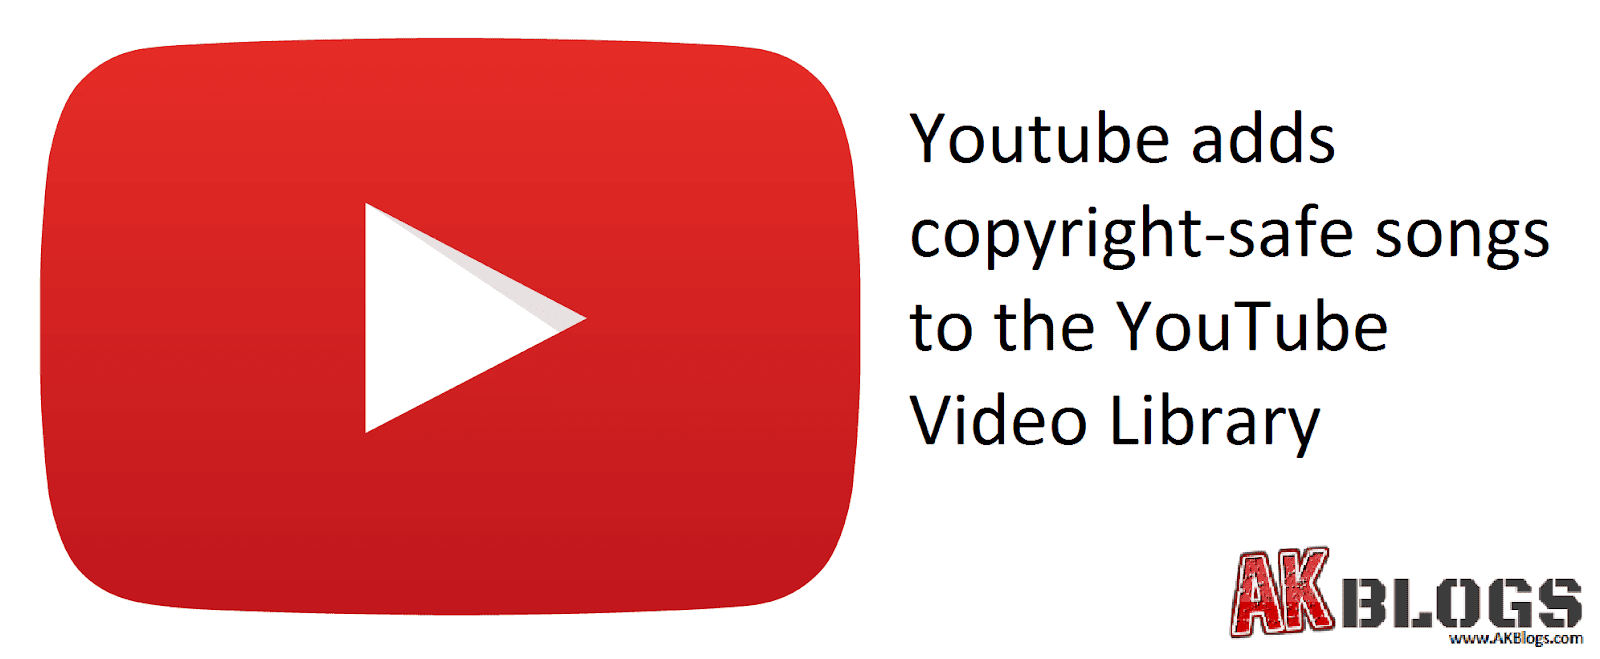 Youtube adds copyright-safe songs to the YouTube Audio